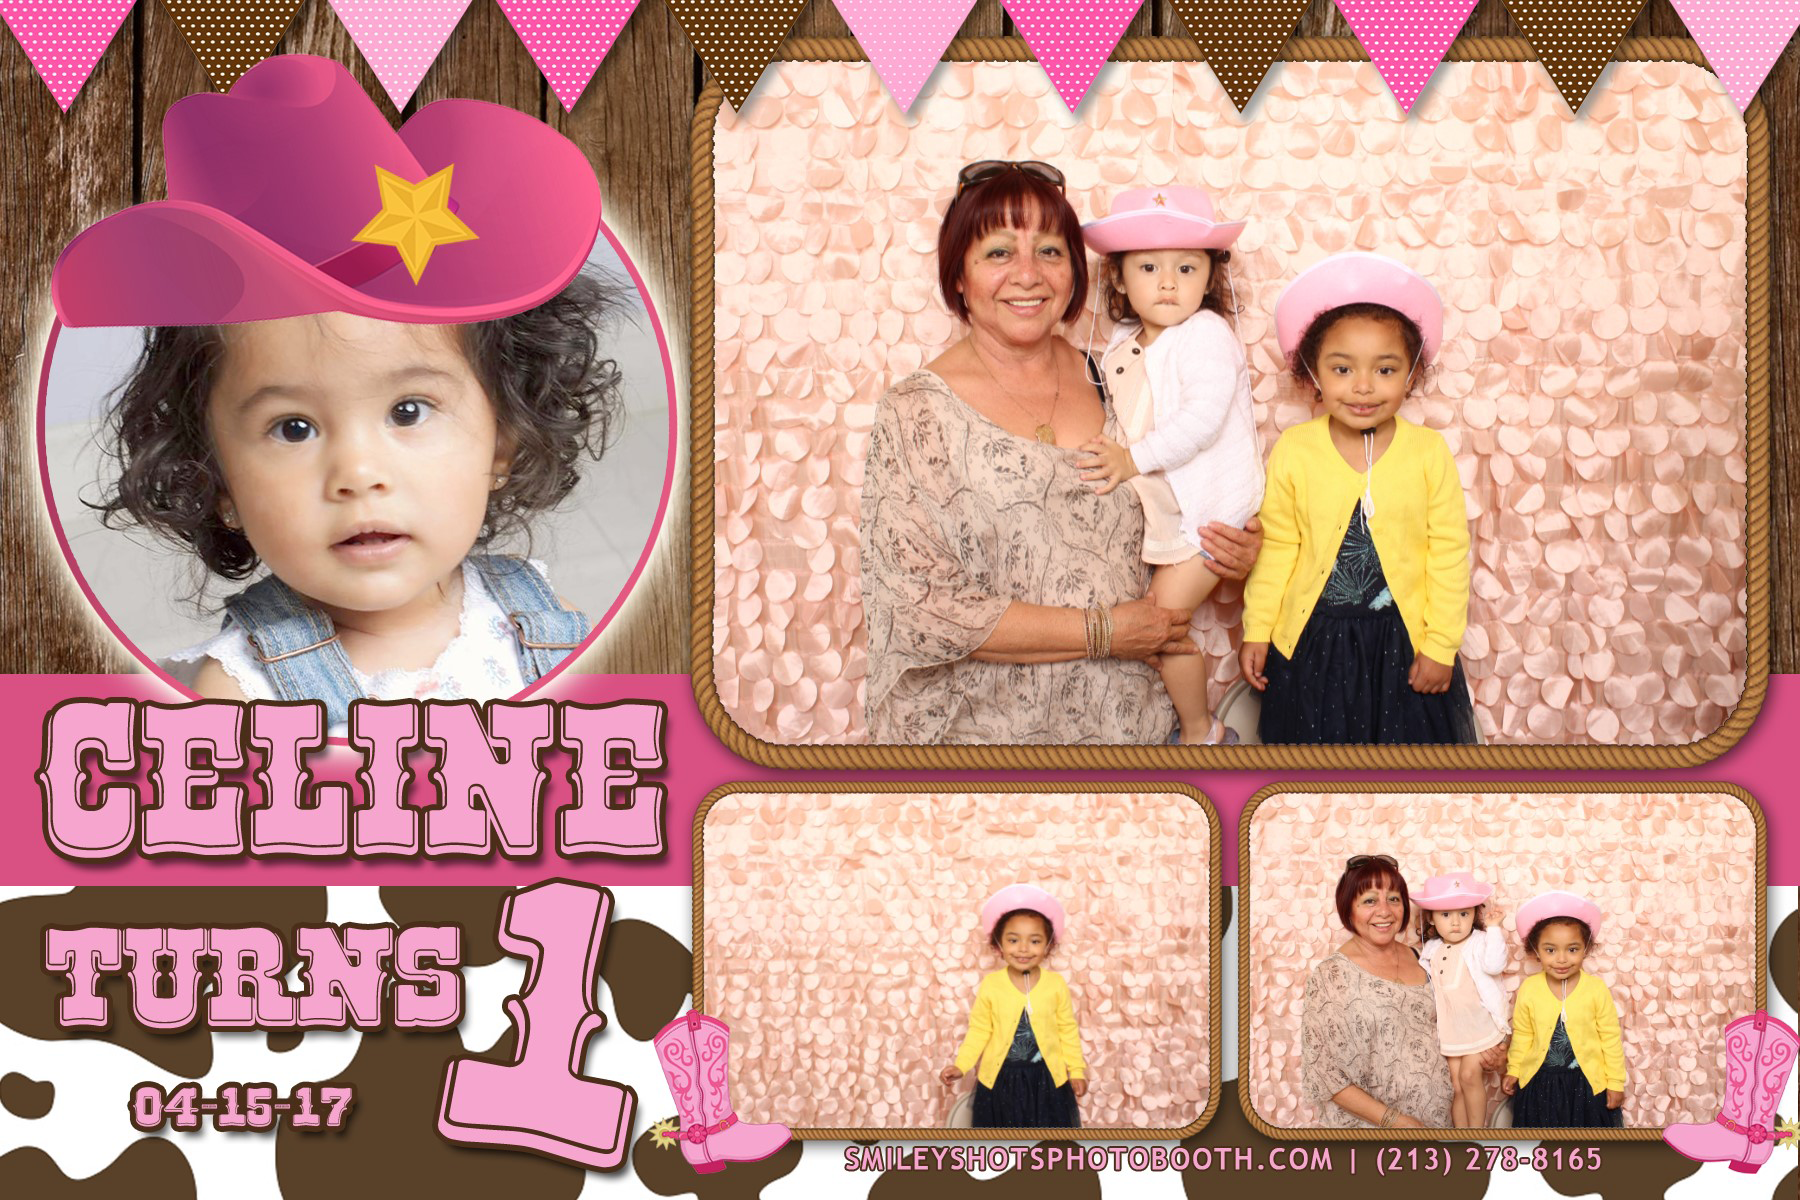 Celine turns 1 Smiley Shots Photo Booth Photobooth (10).png